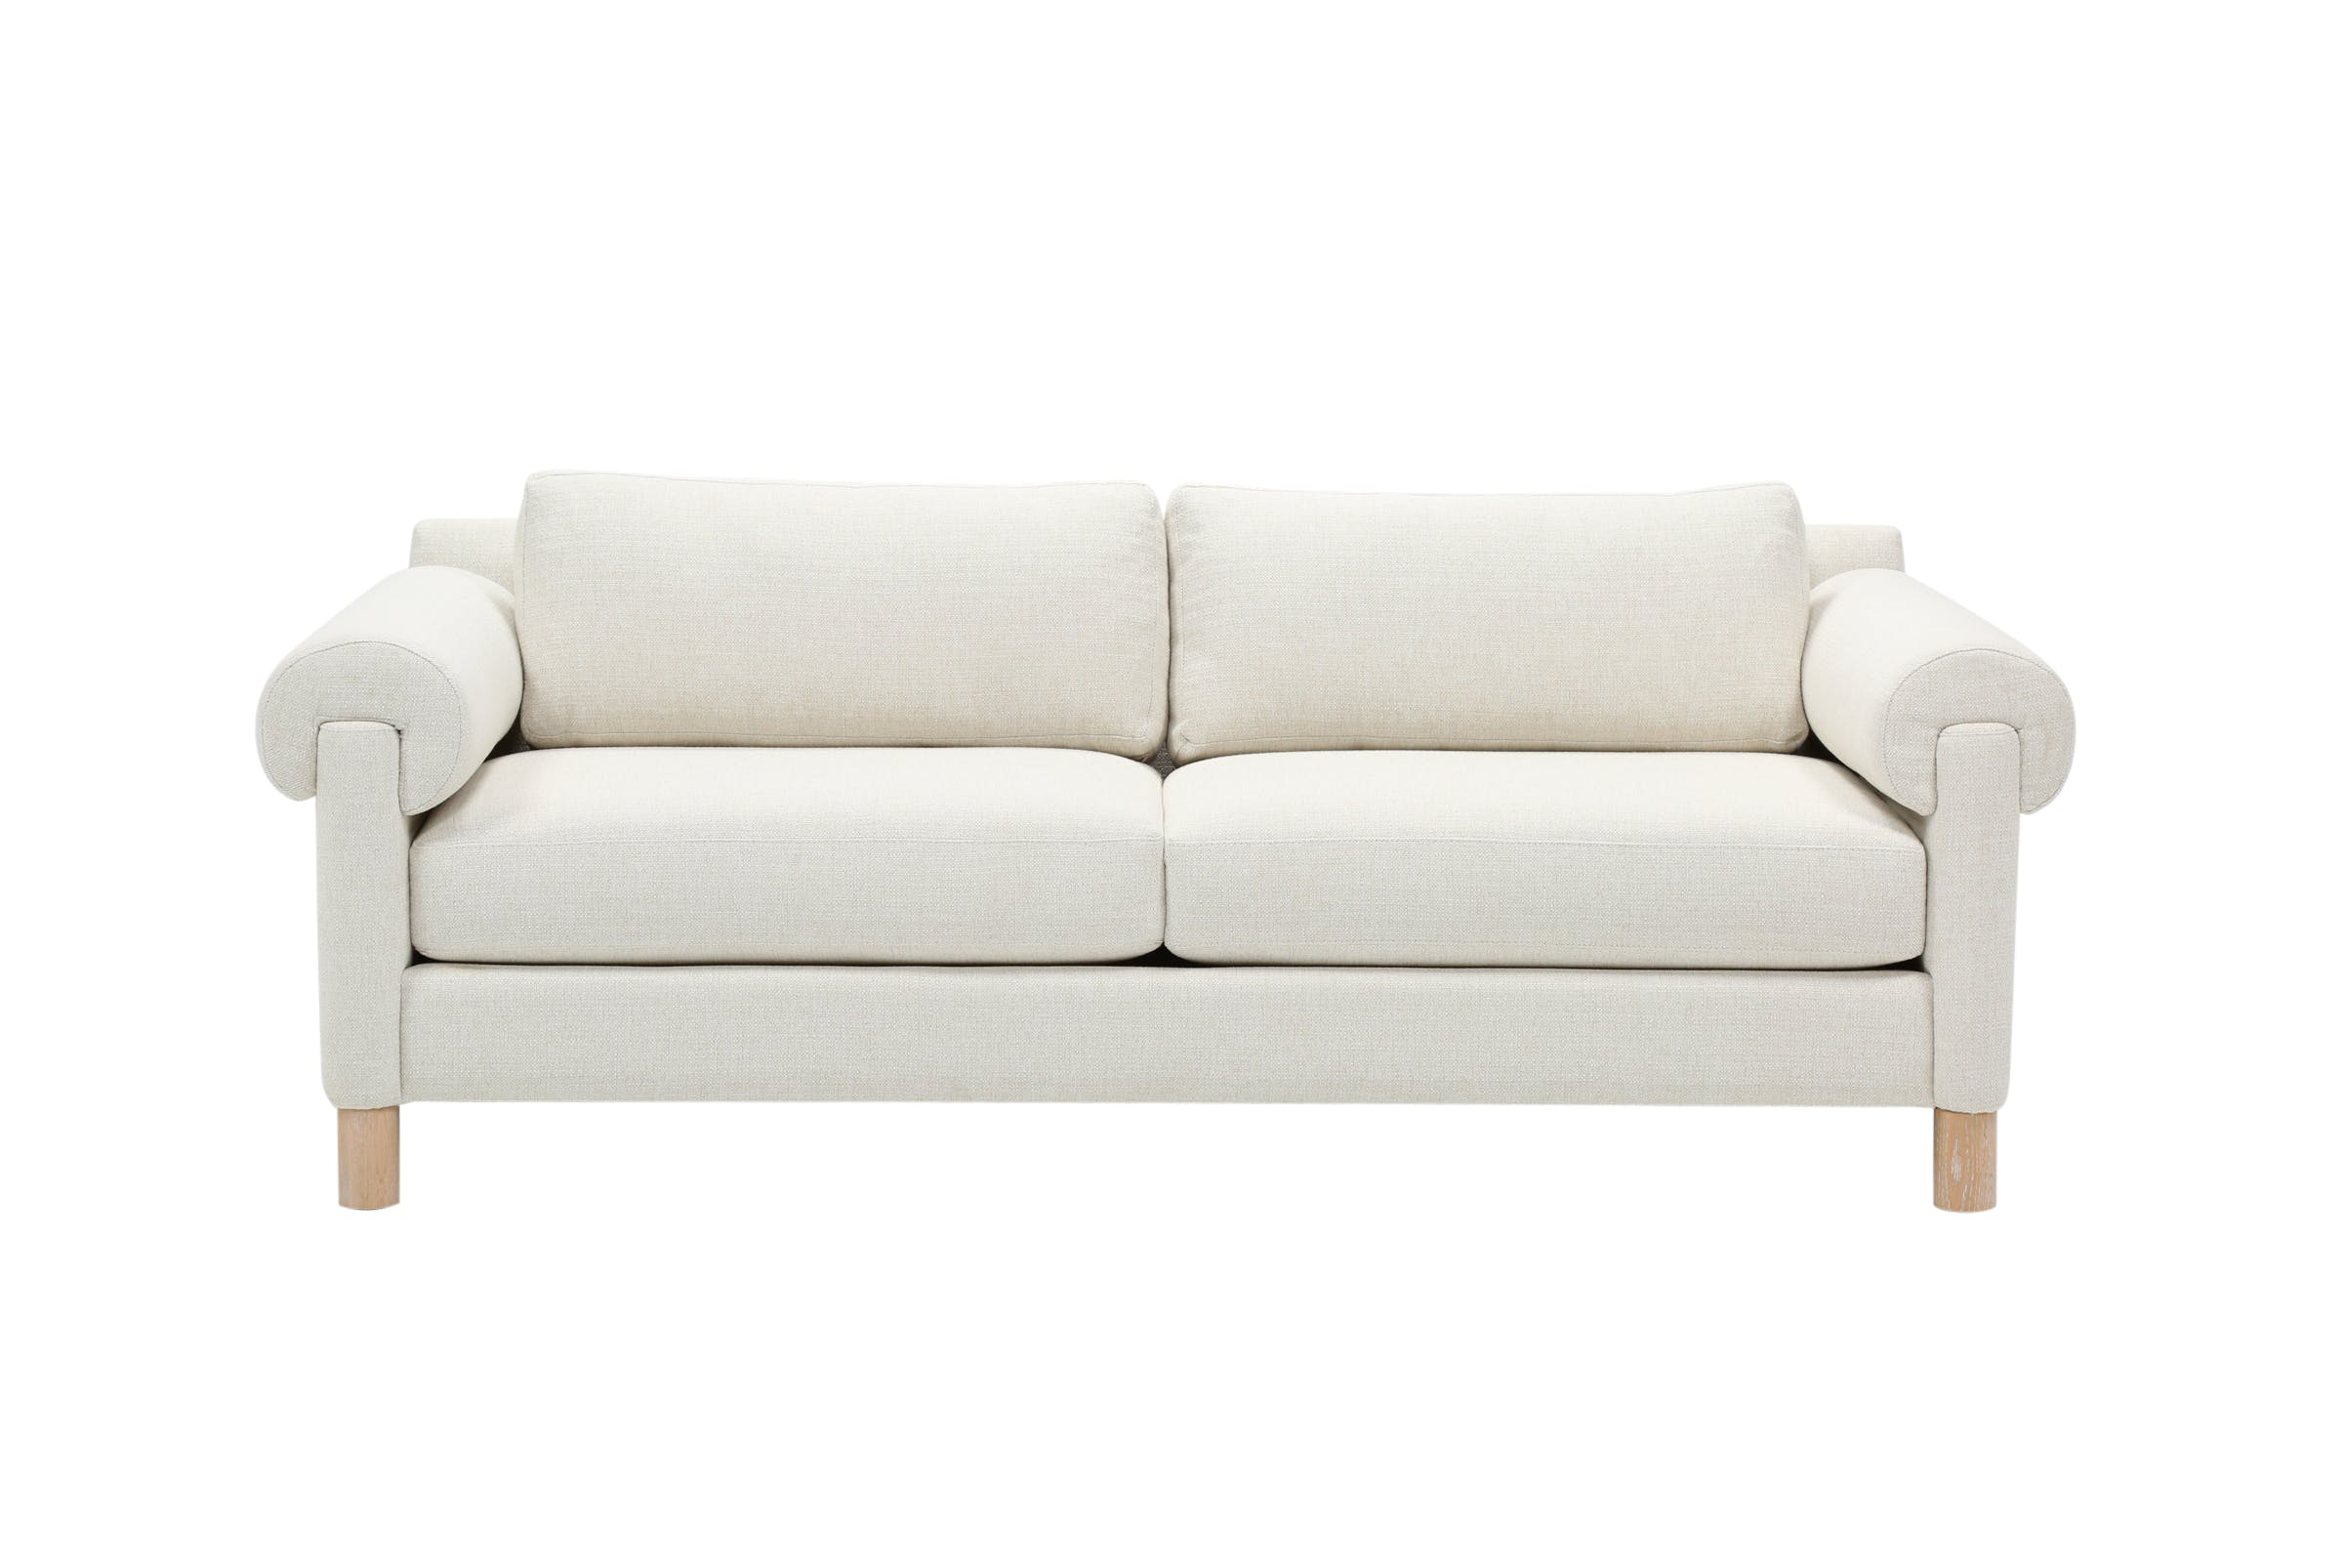 Nate Berkus Just Launched A Home Collection With Hubby Jeremiah Regarding Liv Arm Sofa Chairs By Nate Berkus And Jeremiah Brent (Photo 11 of 20)